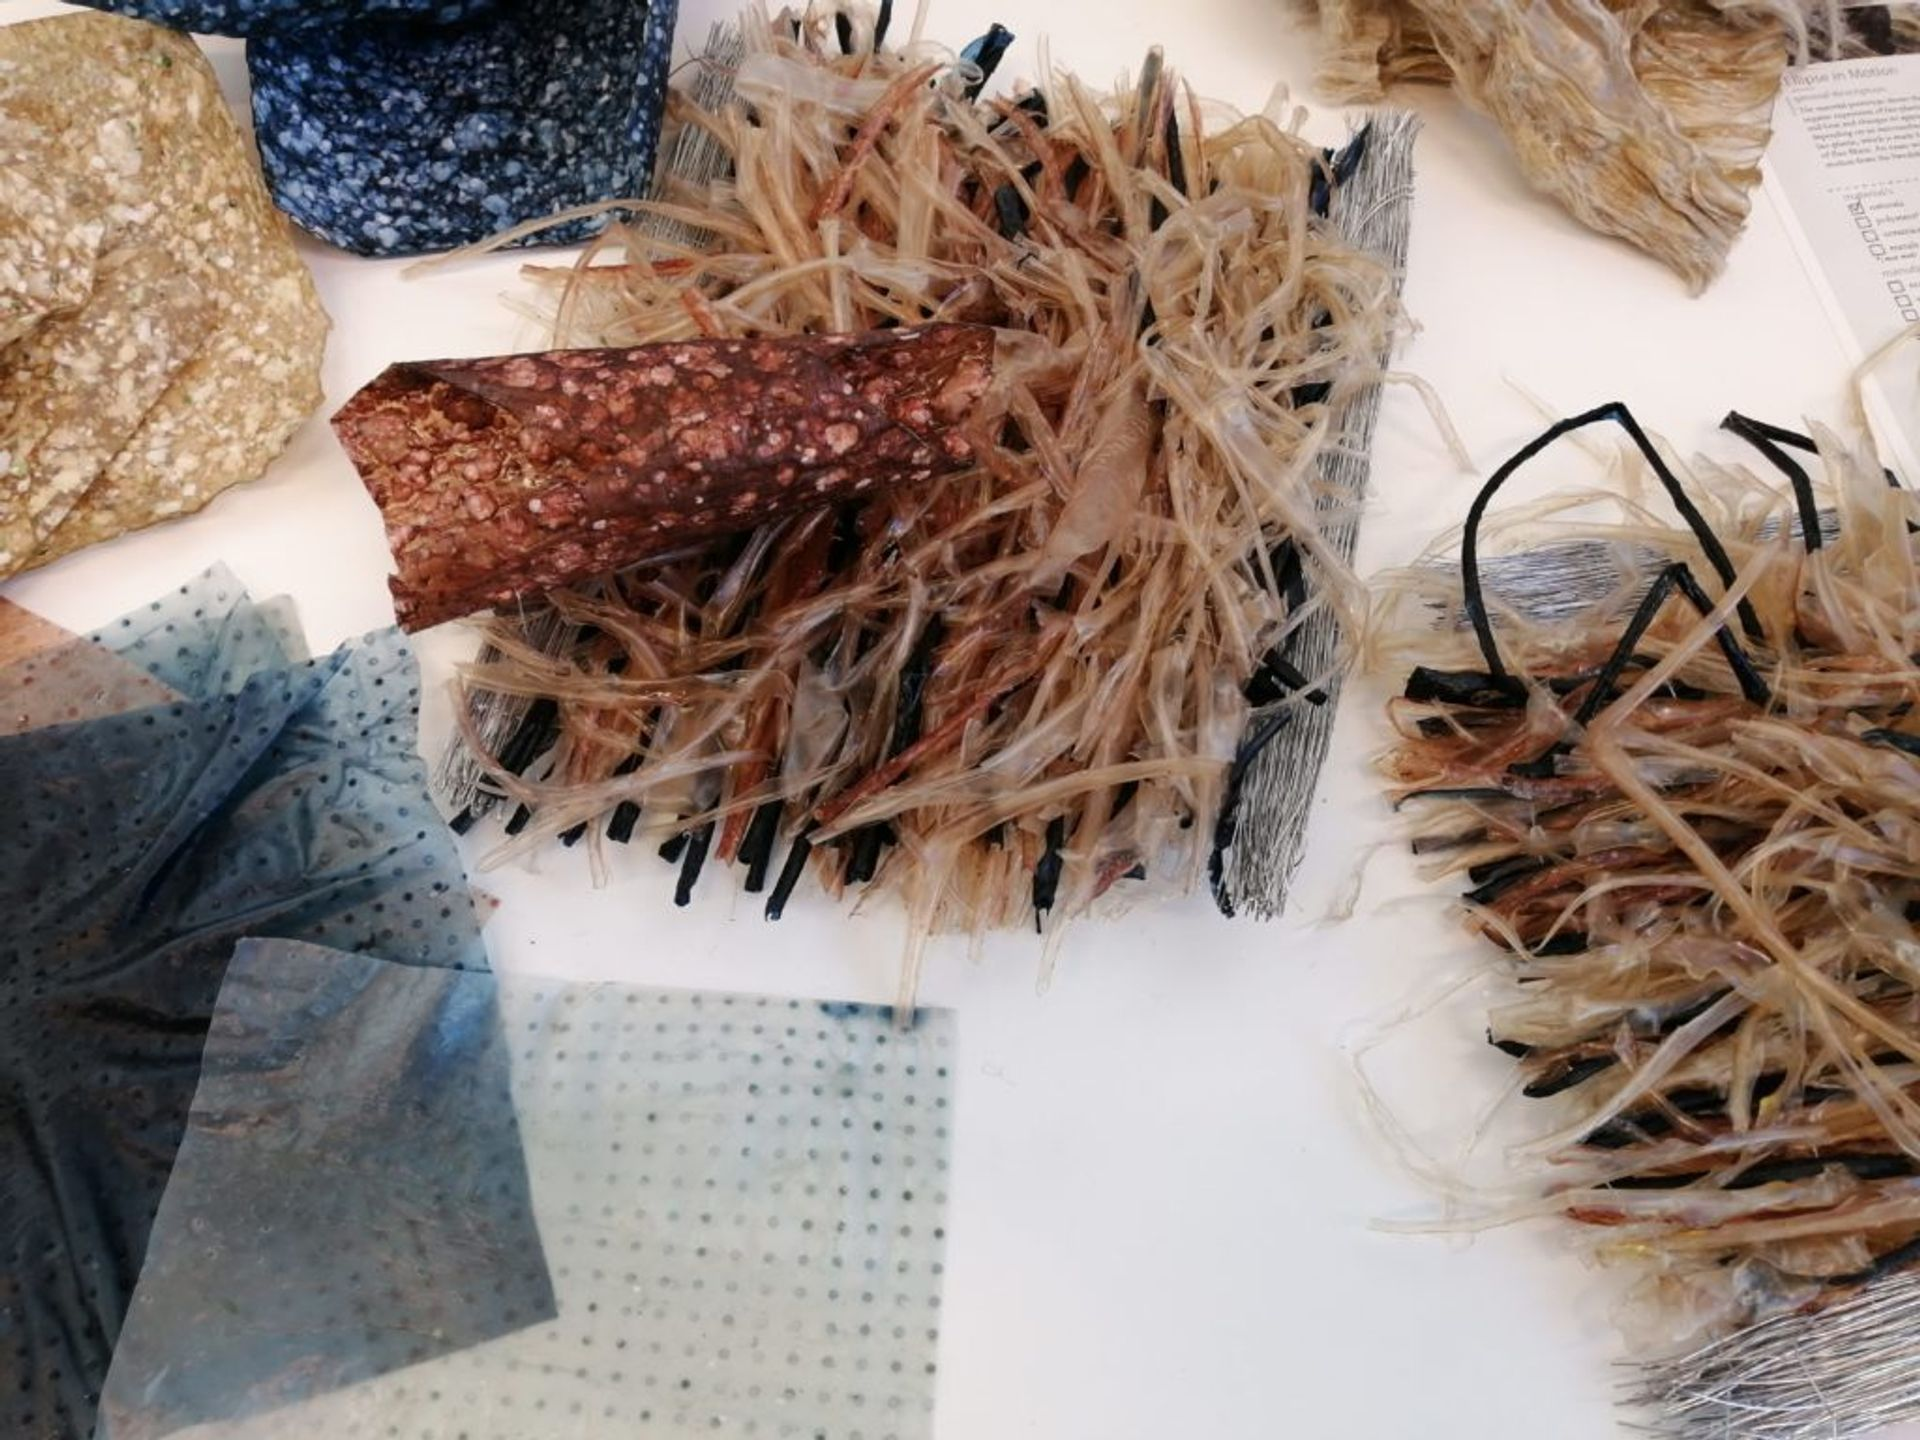 A selection of different textiles made from recycled paper and bio-plastic materials.